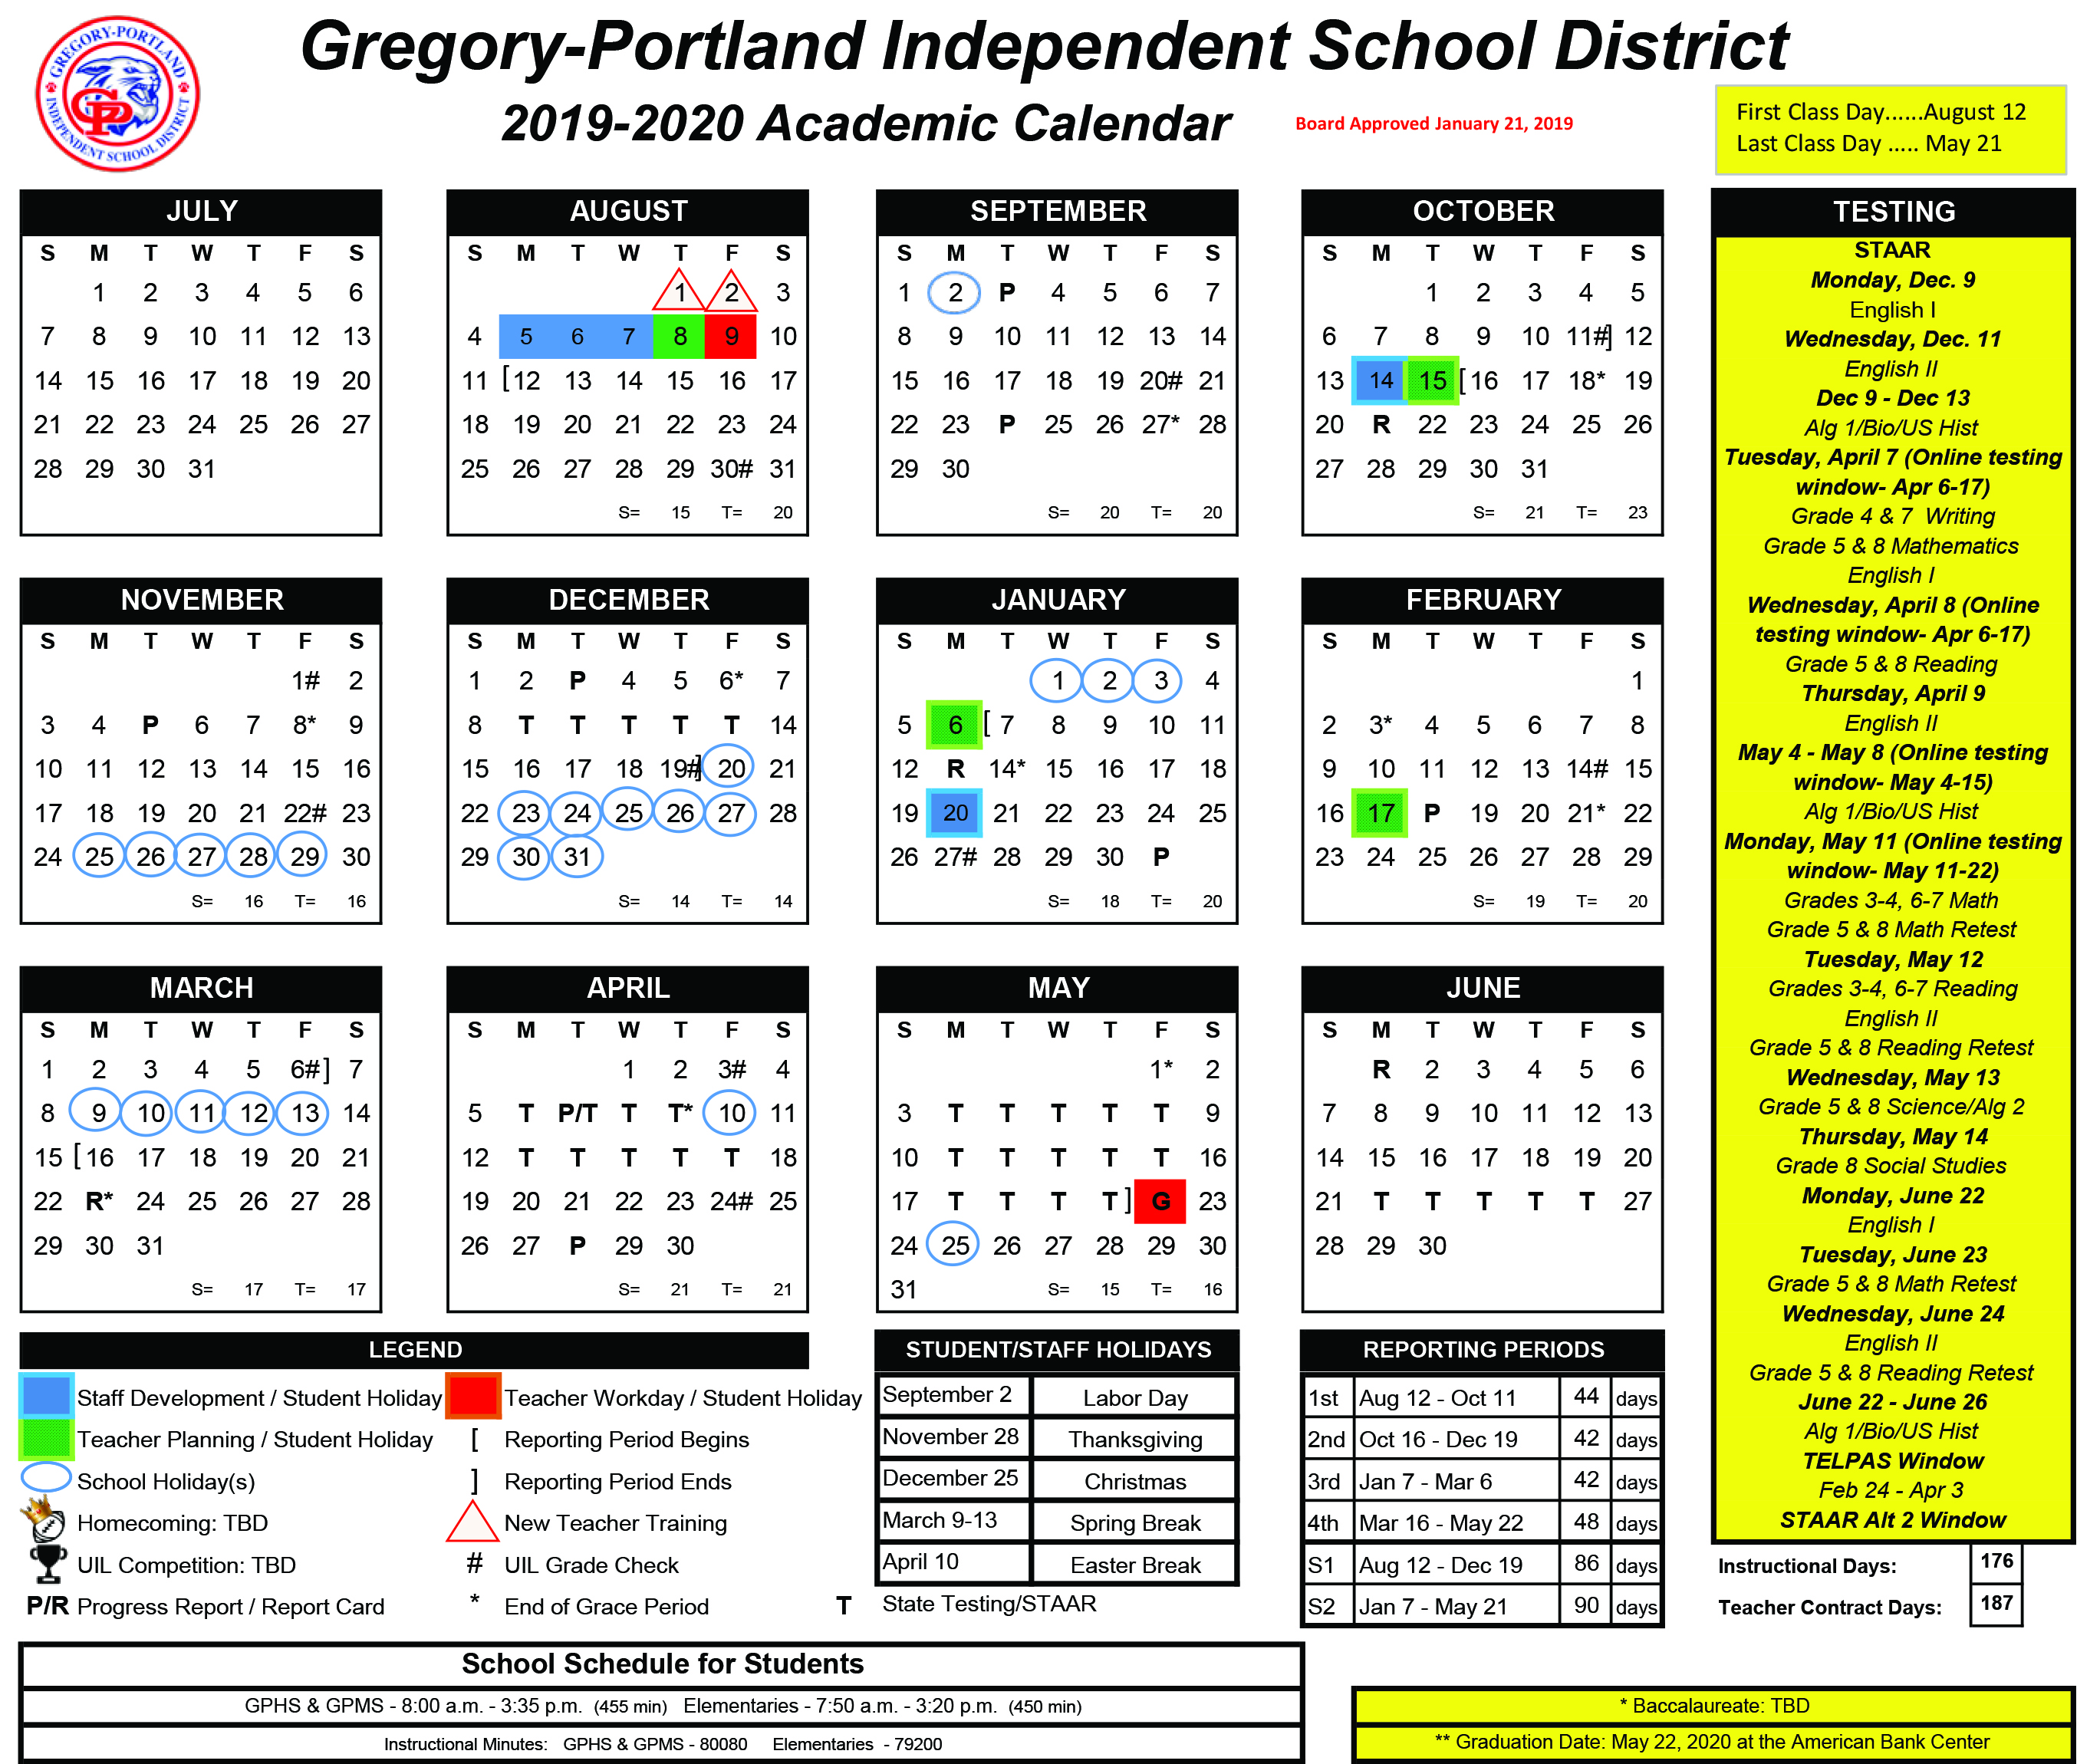 Austin Events Calendar 2020 District Calendar, 2019 20   Gregory Portland Independent School